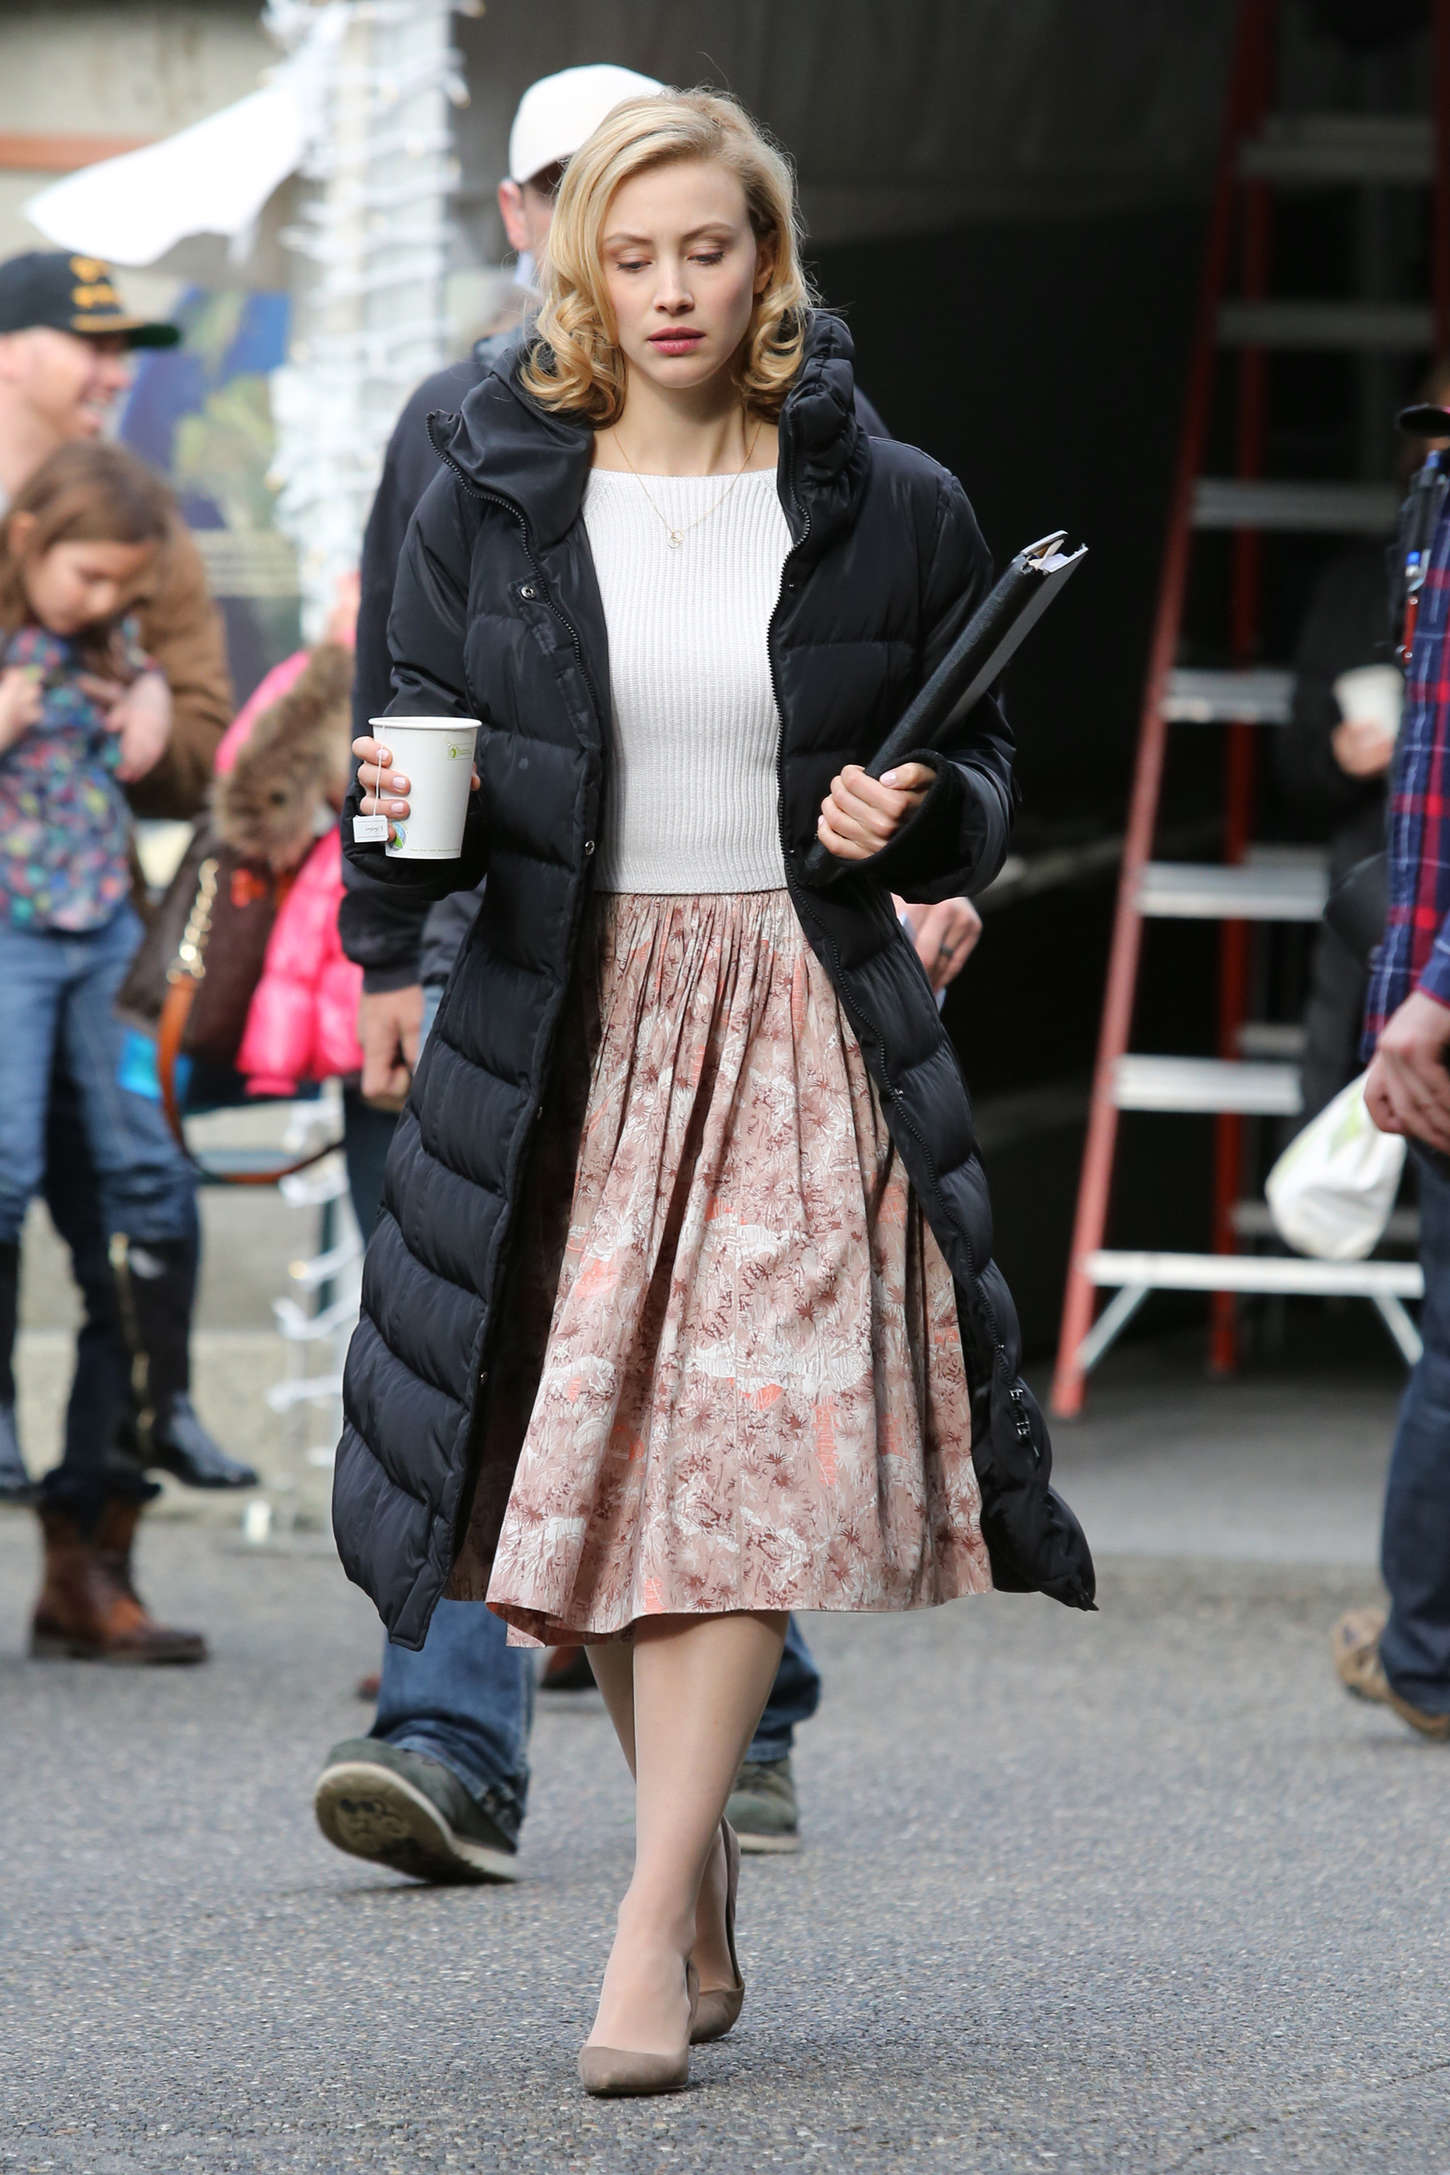 Sarah Gadon on set The Life of Louis Drax